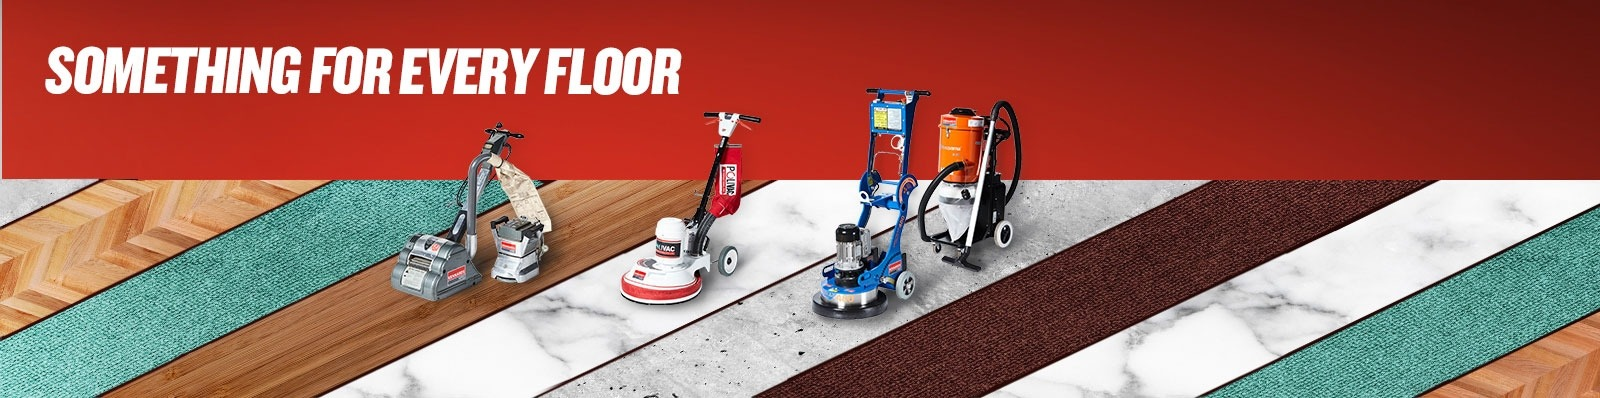 We've got your flooring needs covered!